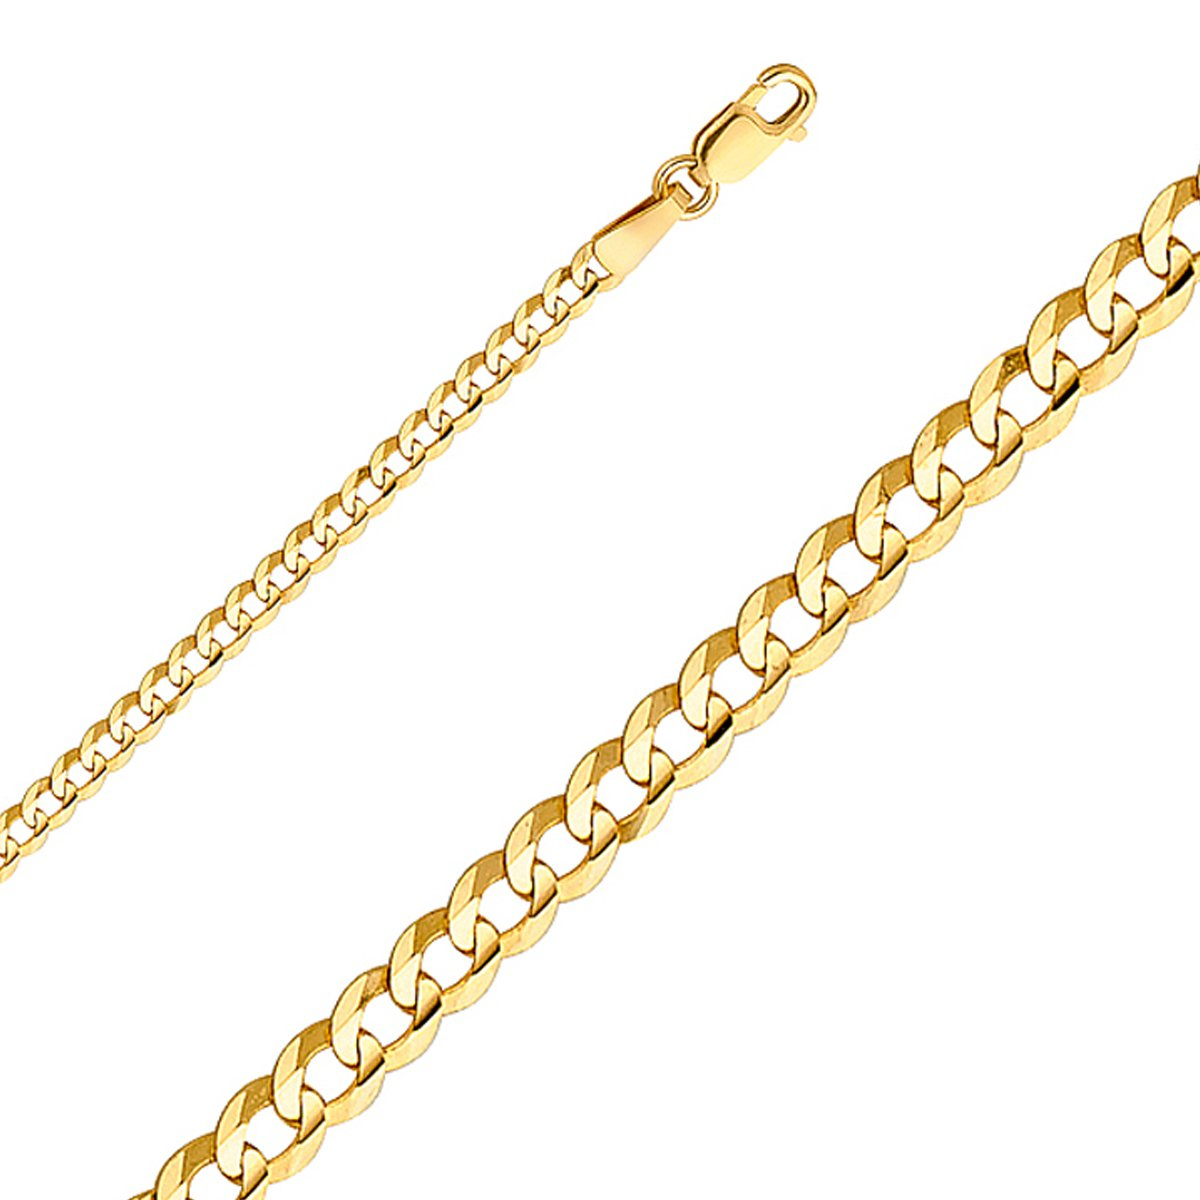 TGDJ 14k Yellow Gold 2.7 mm Curb Cuban Chain - 7/16/18/20/22/24'' (20 Inches) by Top Gold & Diamond Jewelry (Image #1)